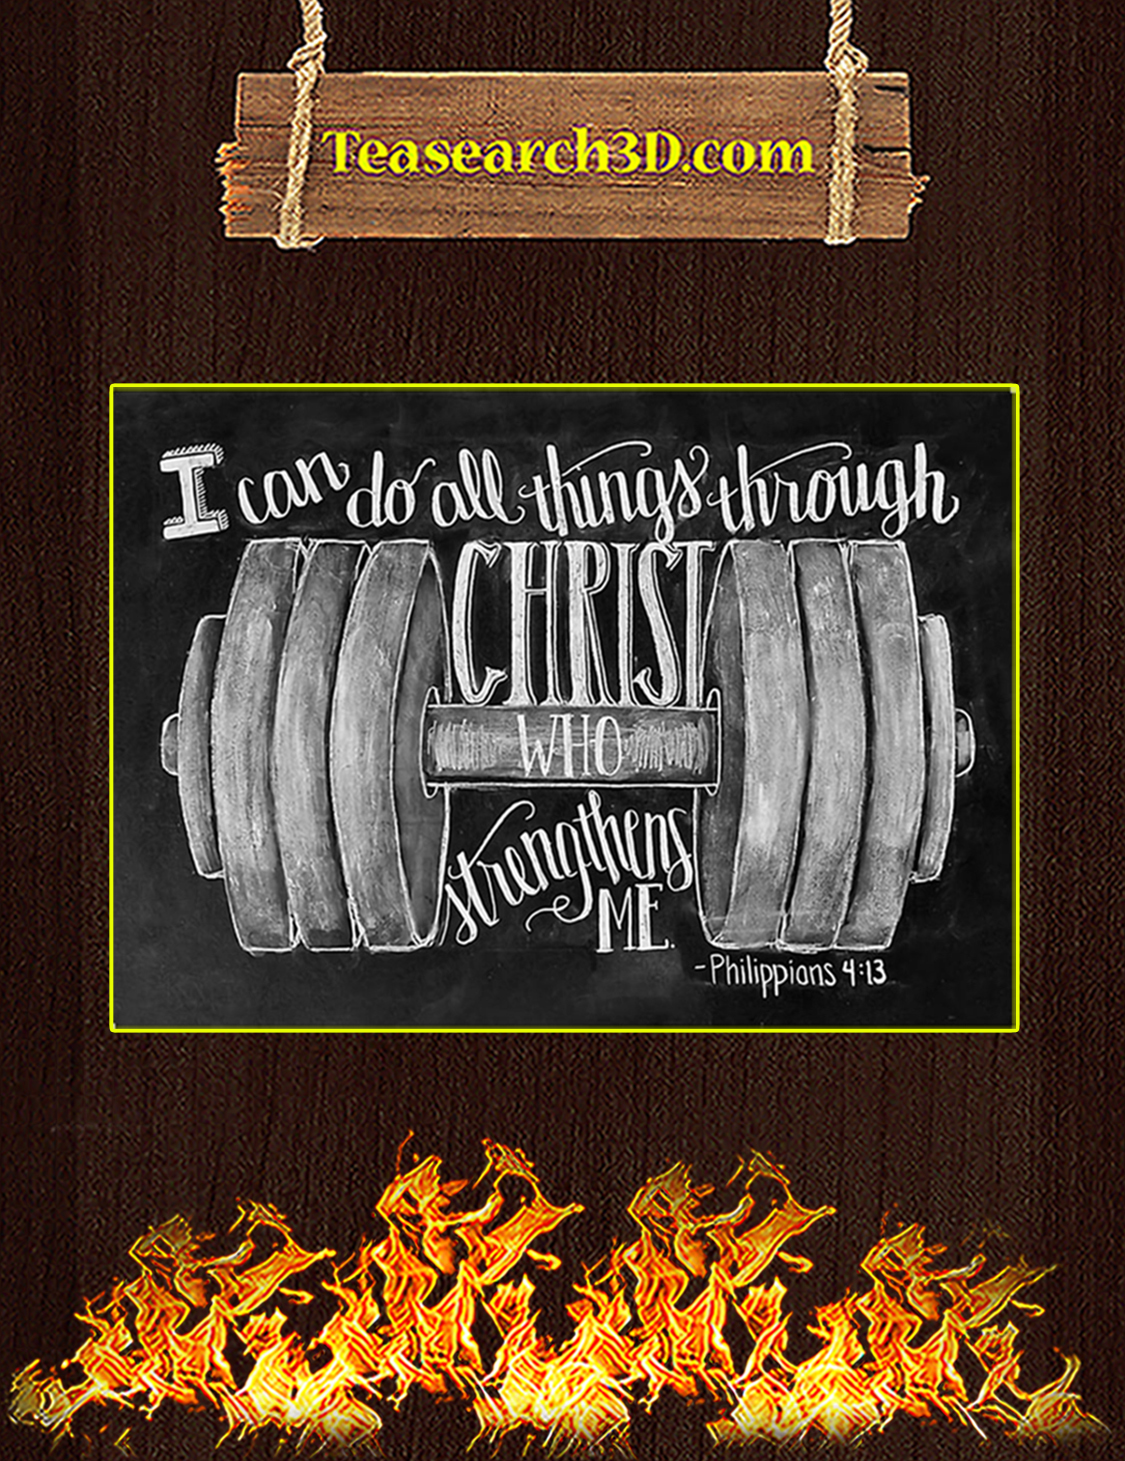 Fitness I can do all things through christ who strengthens me poster A3